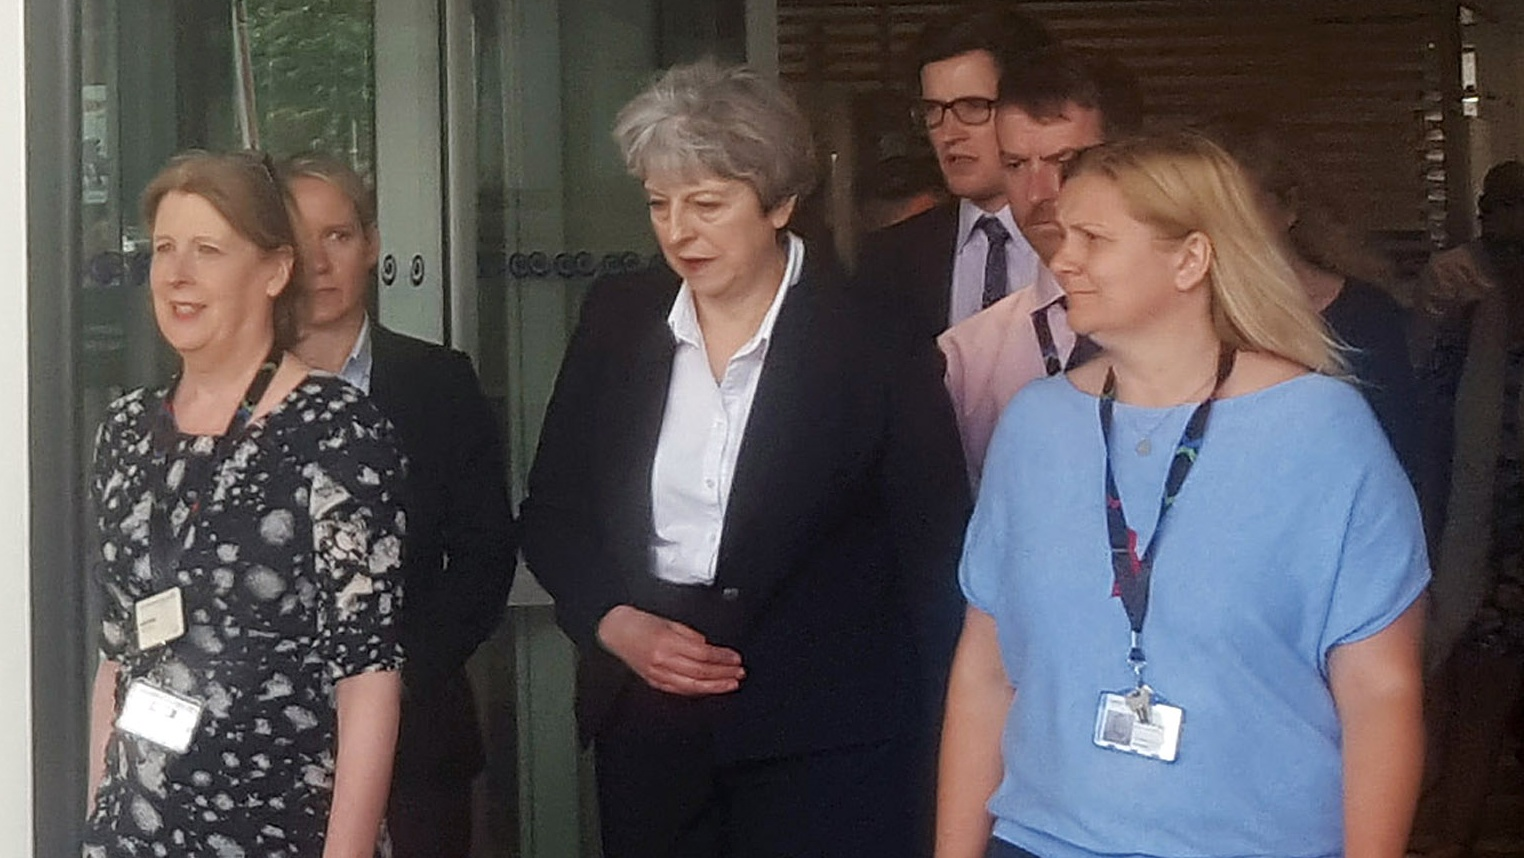 Theresa May called a 'coward' after meeting Grenfell fire victims